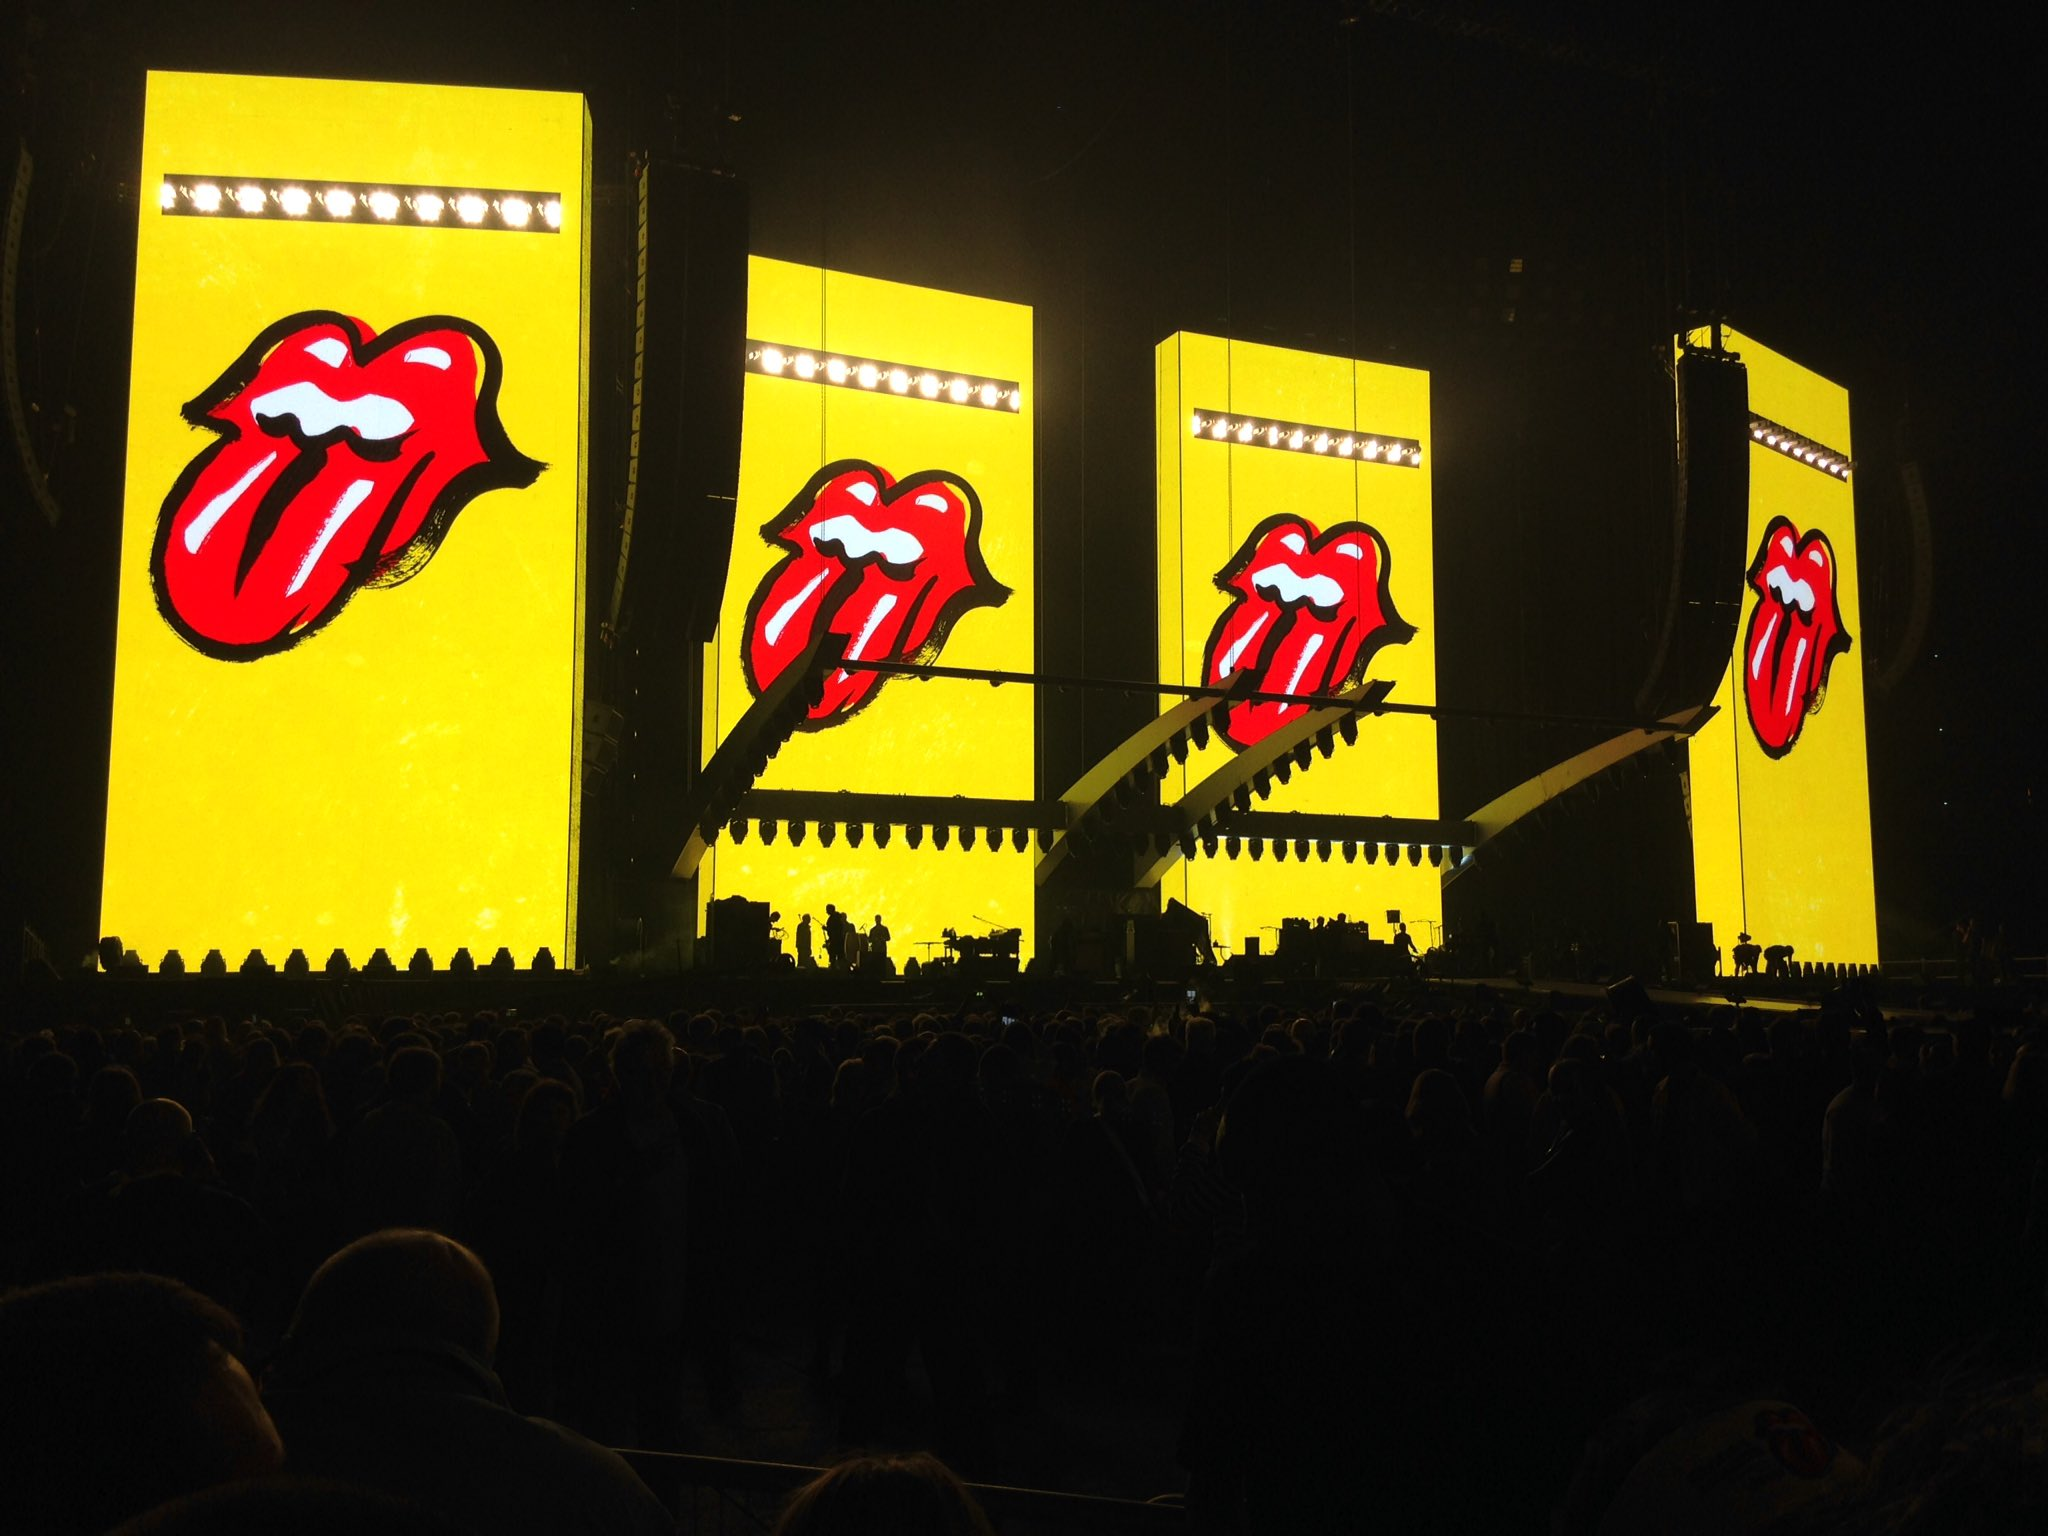 Rolling stones pictures 2018